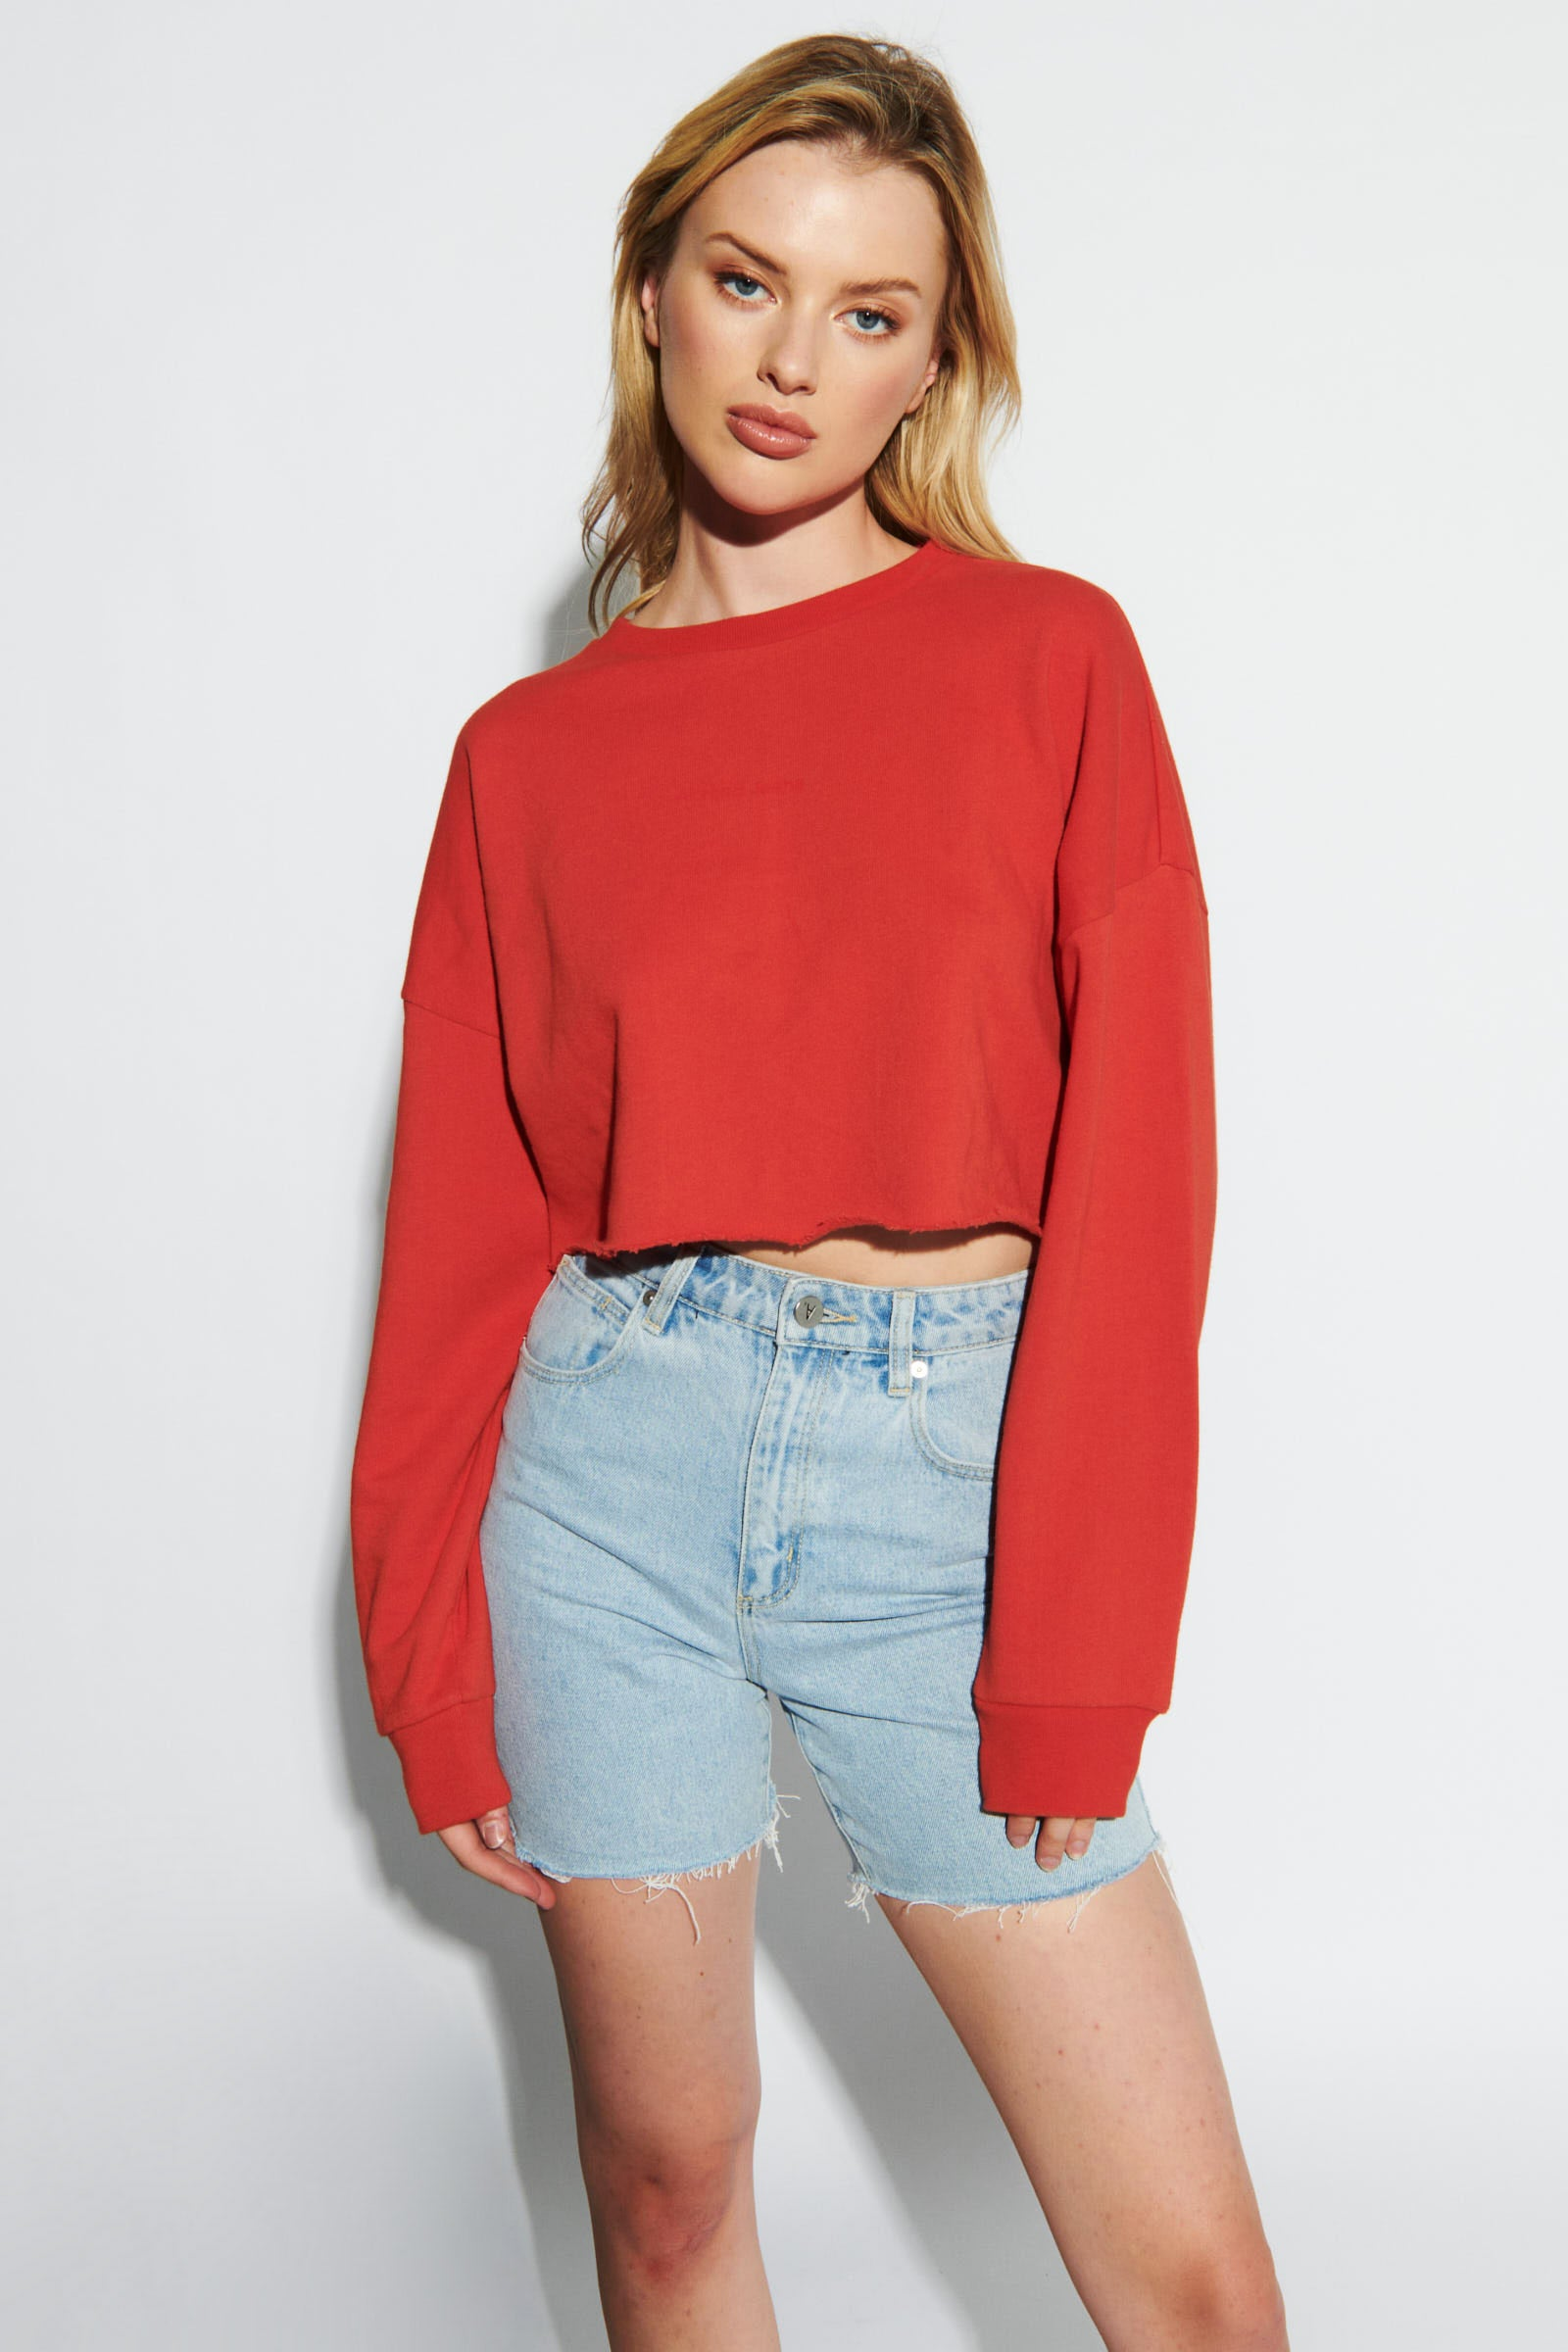 A Cropped Oversized Sweater - Rust Red